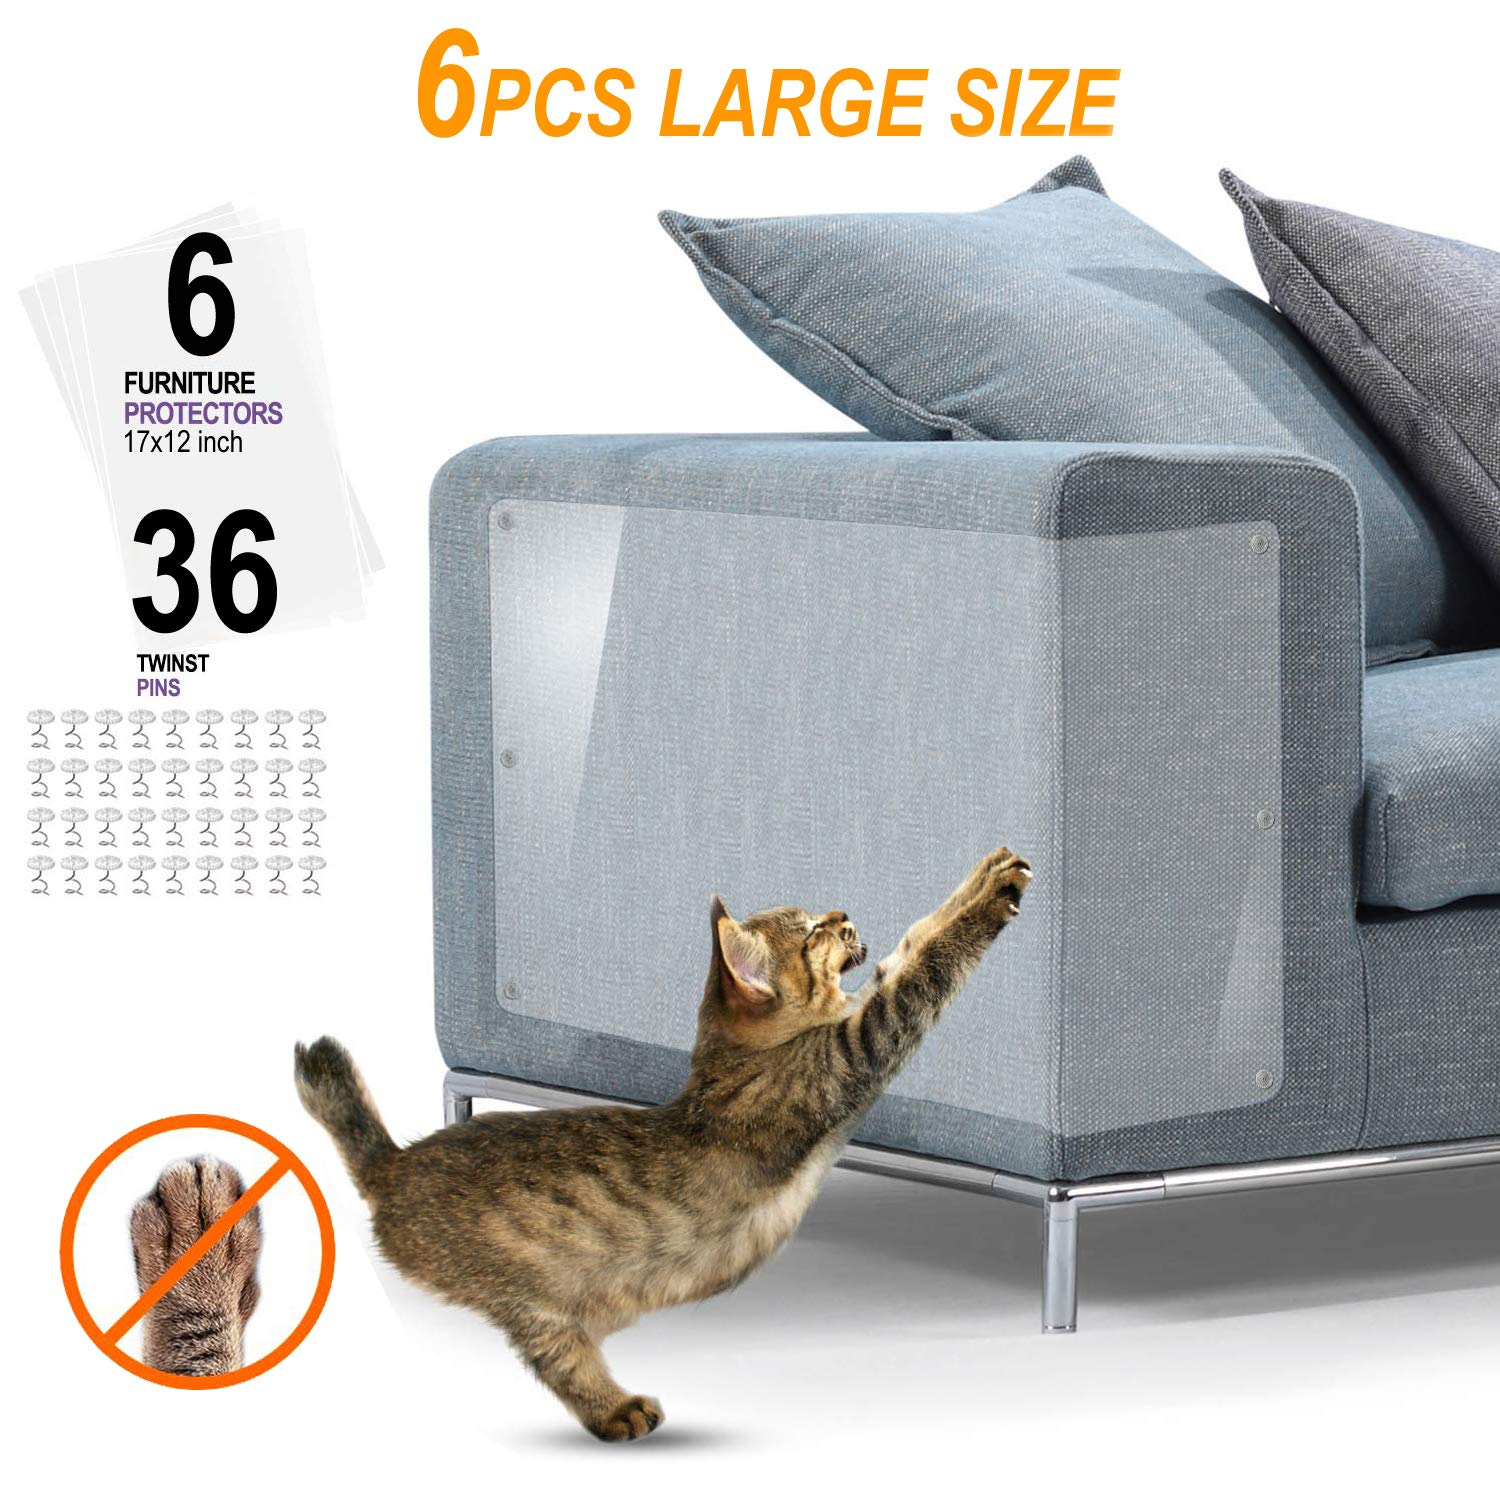 Protector Sofa Gatos – 6pack X-Large Protectores Muebles para Gatos – Pet Couch Protector (17in X 12in)